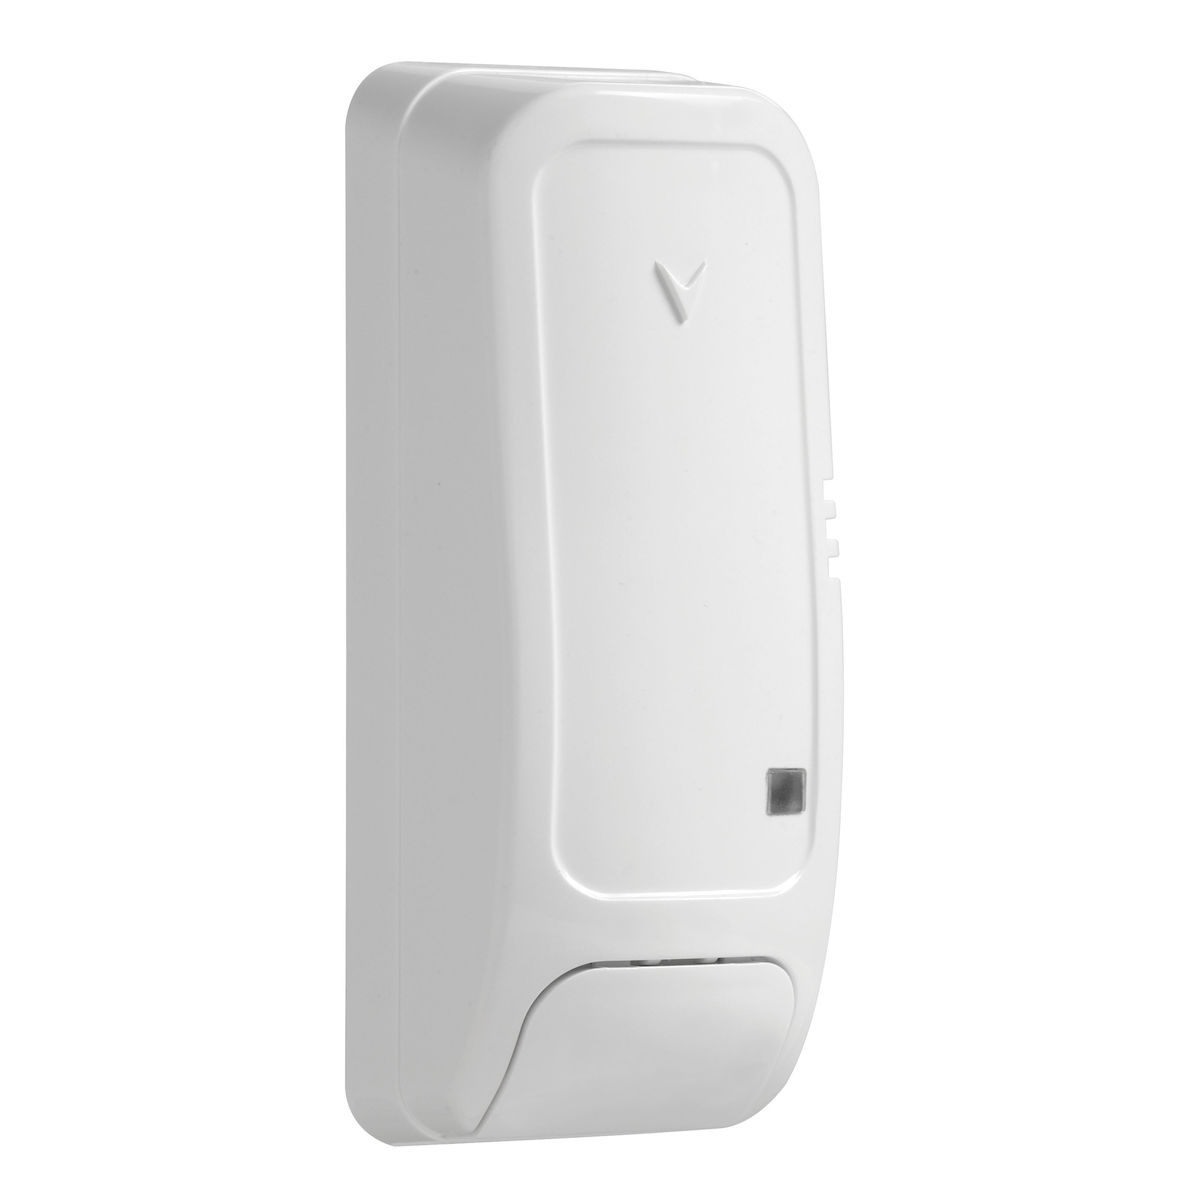 Dsc Pg4935 Neo Shock Sensor Detector Hillside Channel Remote View Mobile Dvr With And Wifi Antenna